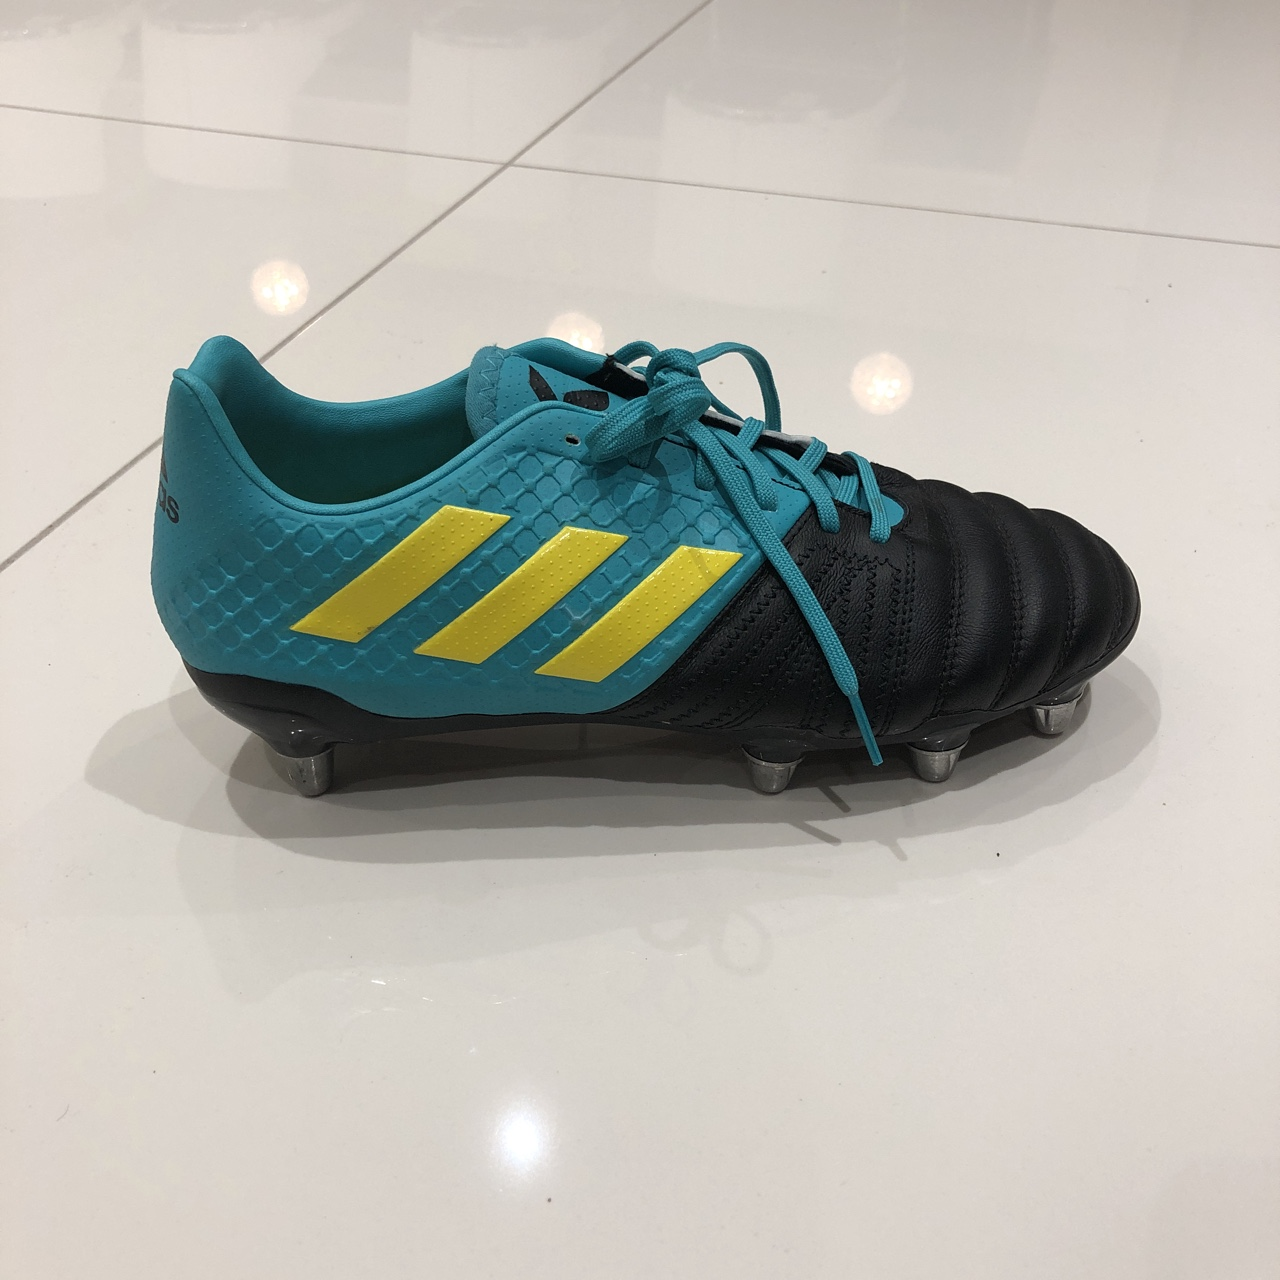 Adidas Rugby Boots In Turquoise And Black Only Worn Depop